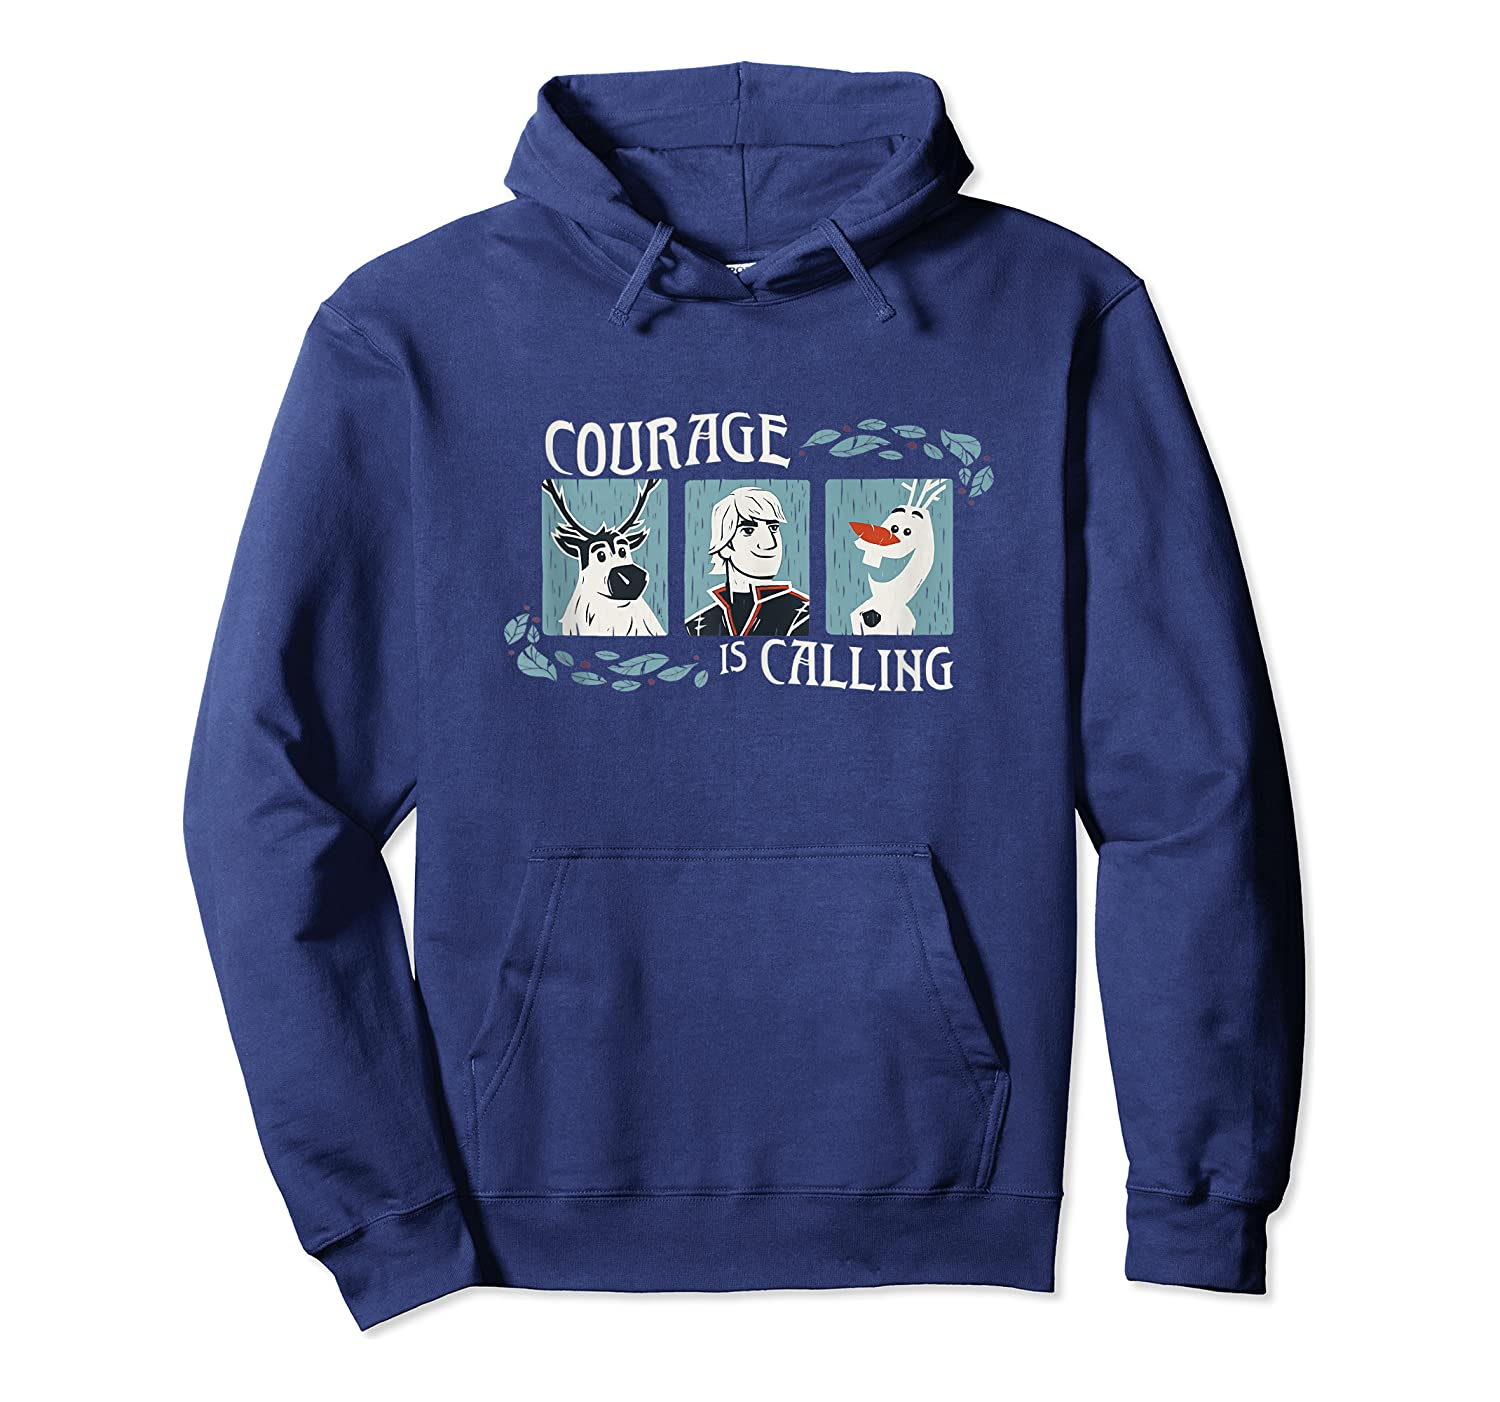 Frozen 2 Courage Is Calling Sven Kristoff Olaf Trio Shirts Unisex Pullover Hoodie